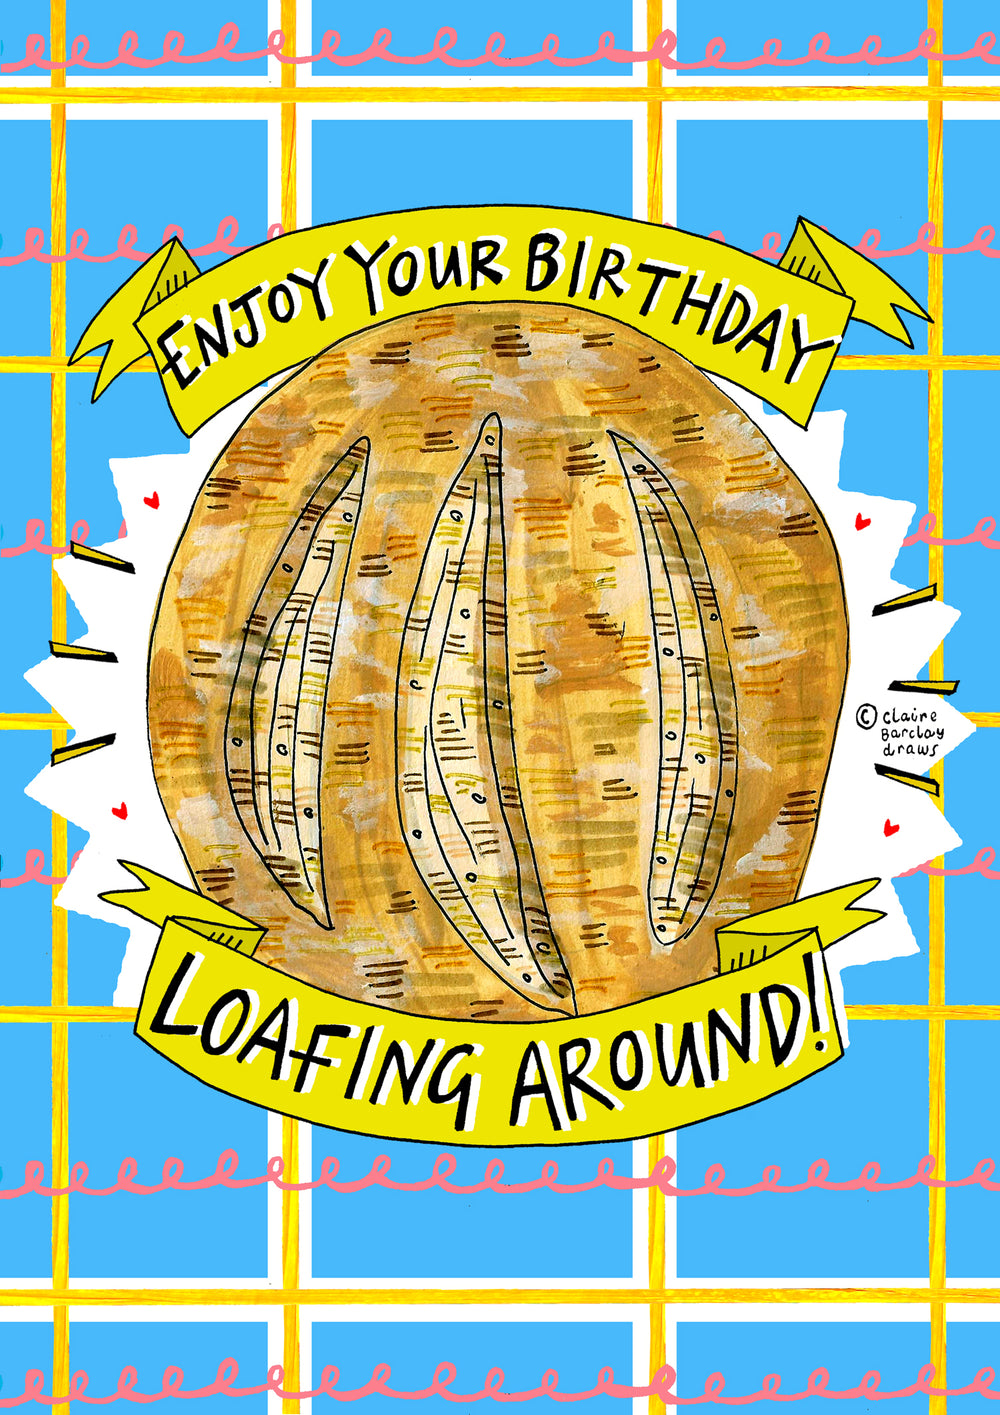 Enjoy Your Birthday LOAFING AROUND! Greetings Card